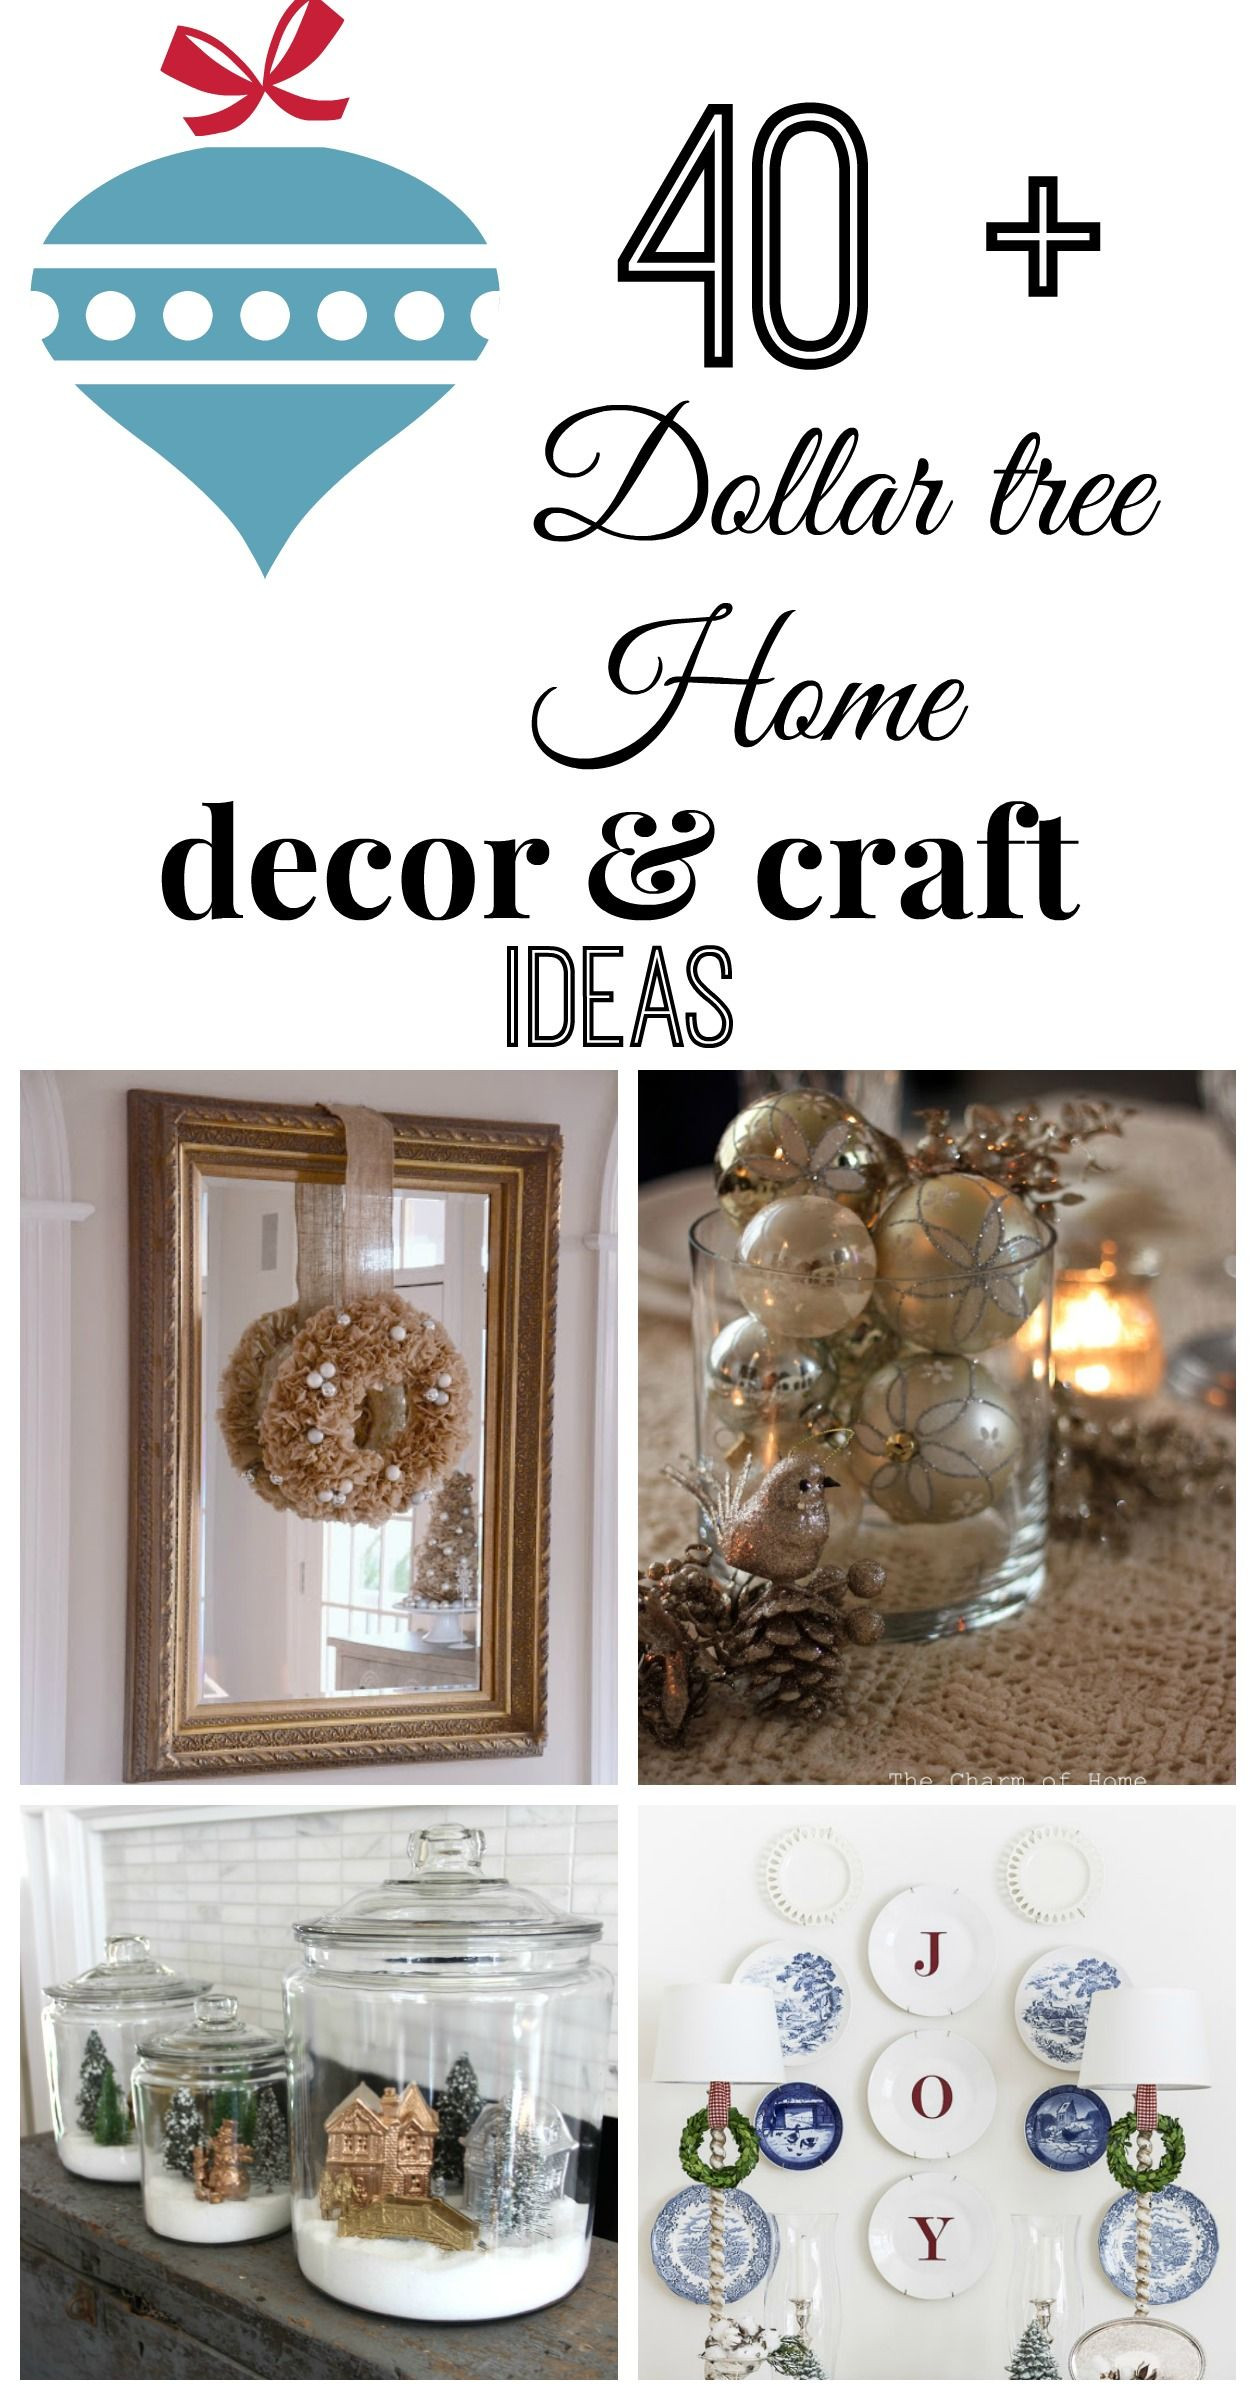 Best ideas about Dollar Tree Craft Ideas . Save or Pin All things Dollar tree Christmas party Now.